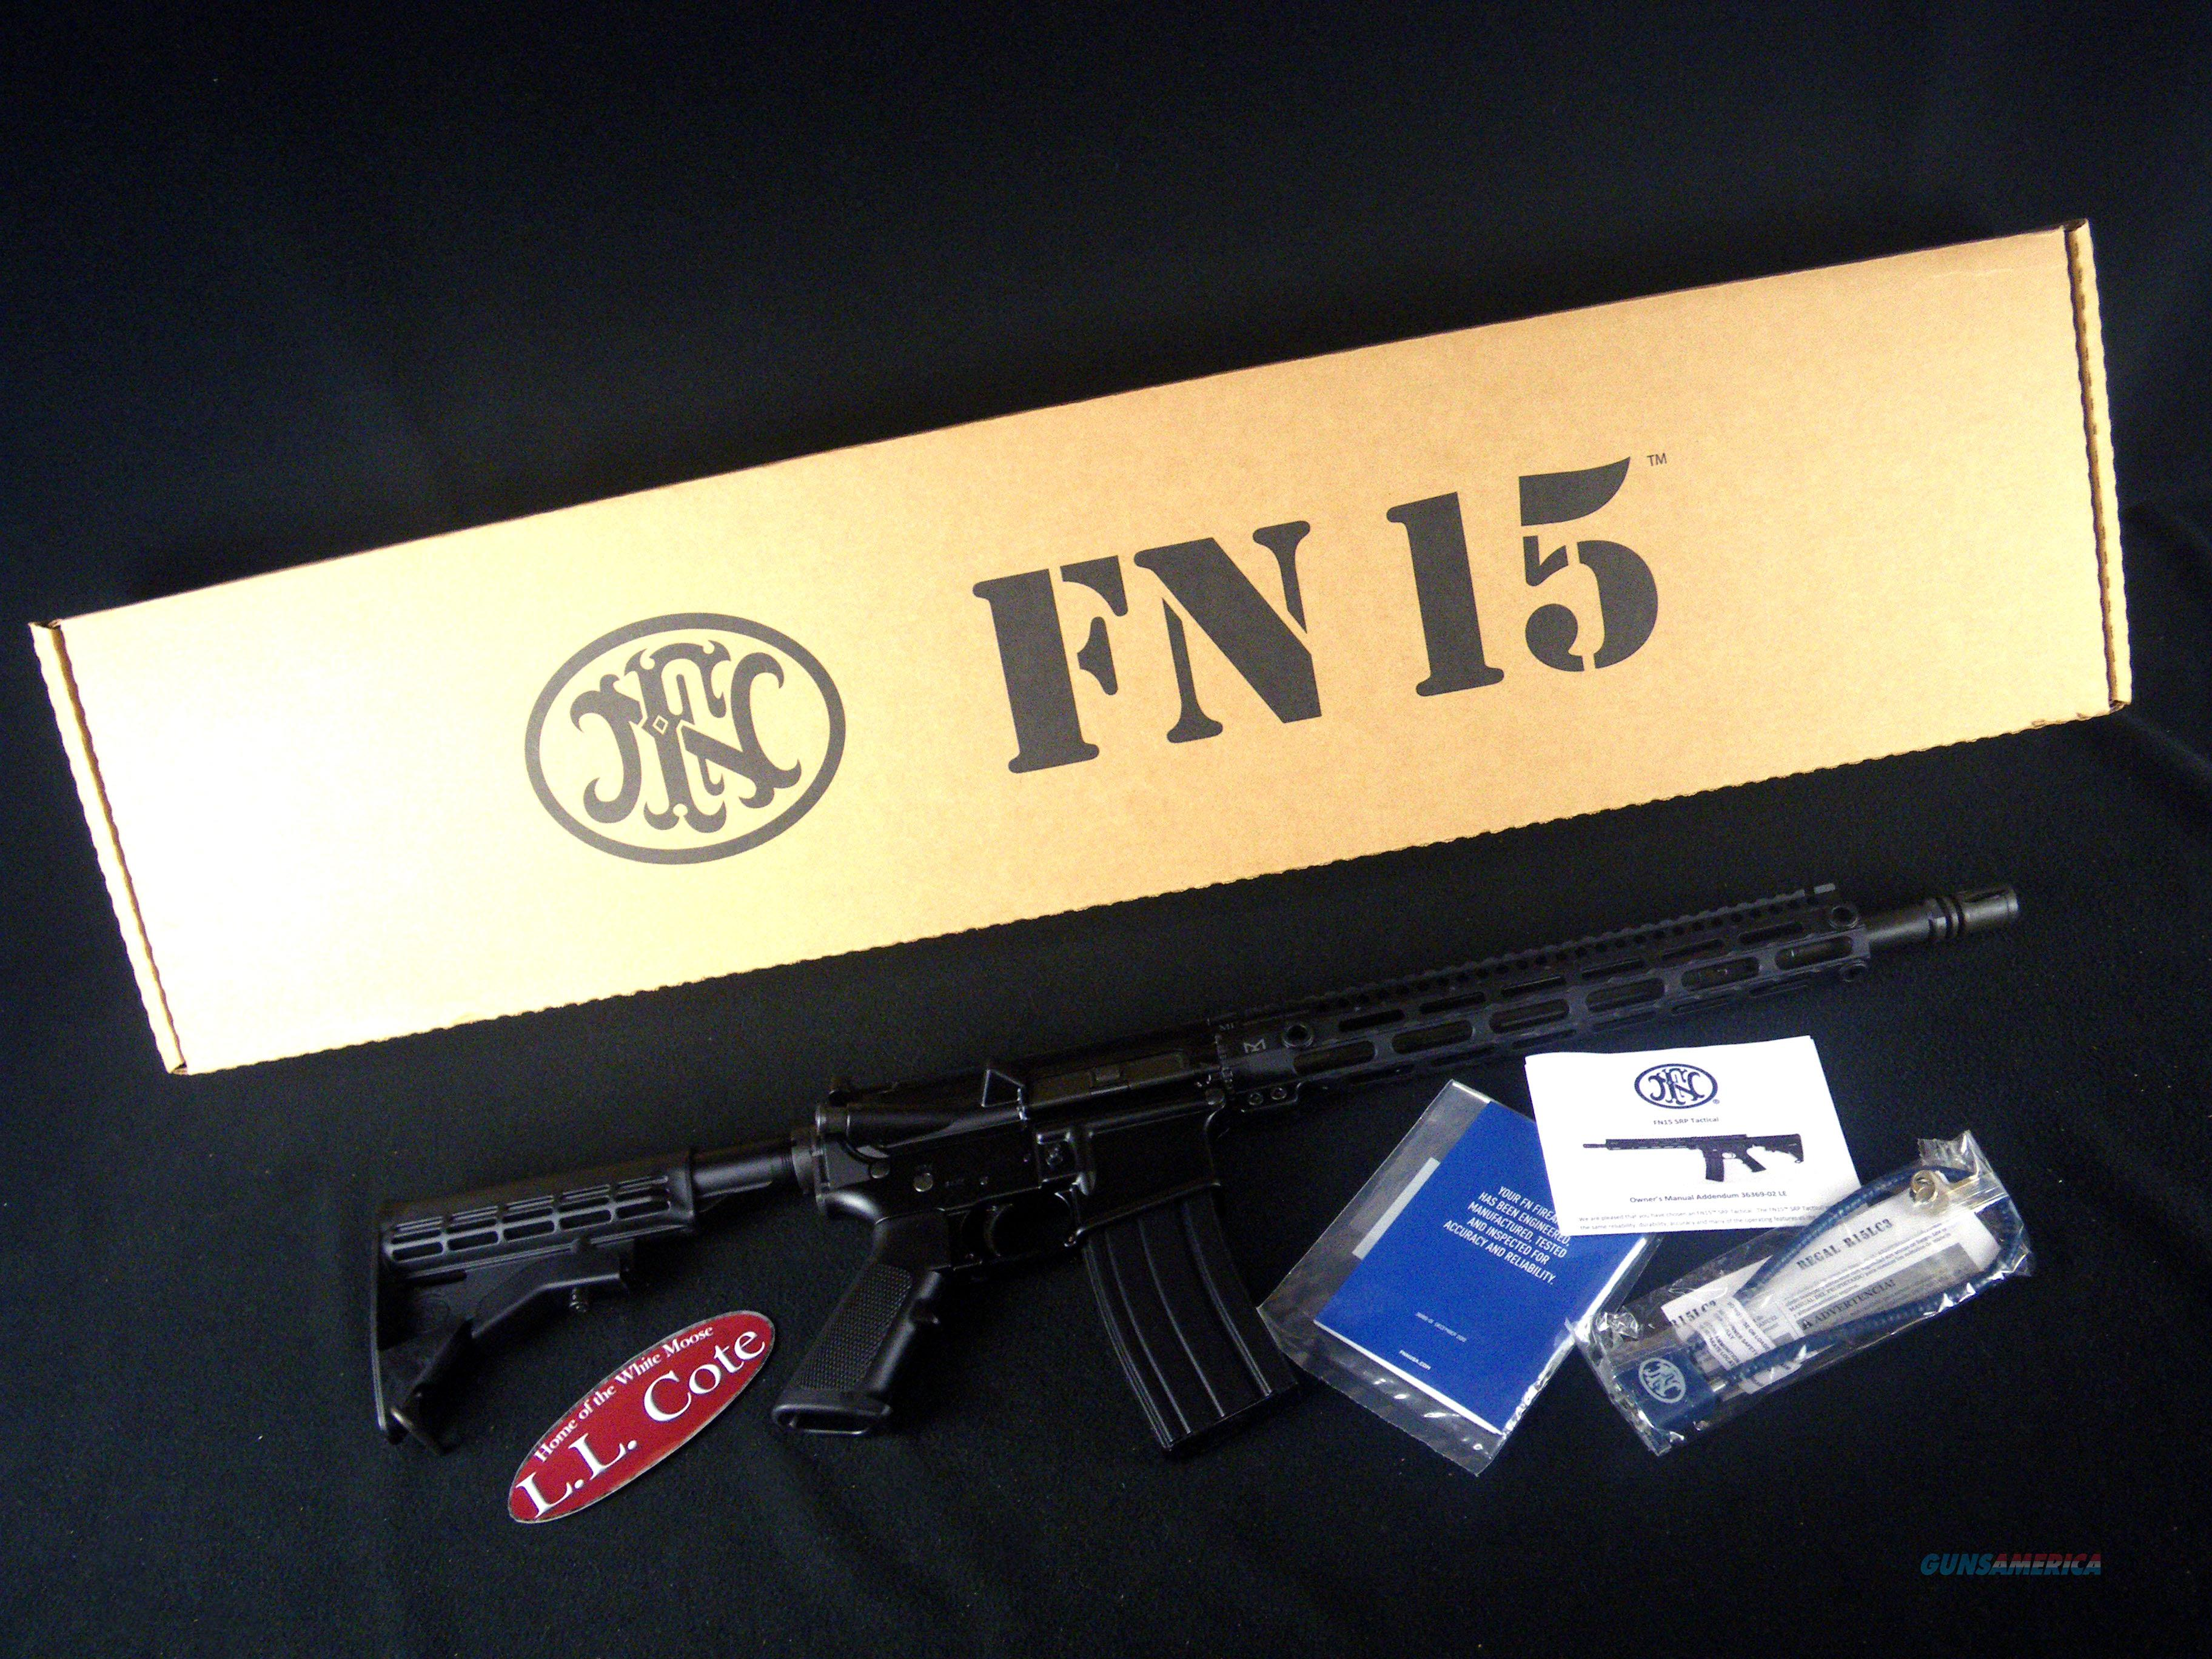 "FNH FN-15 SRP Tactical 5.56mm NATO 16"" NEW 36369-02  Guns > Rifles > FNH - Fabrique Nationale (FN) Rifles > Semi-auto > FN 15"